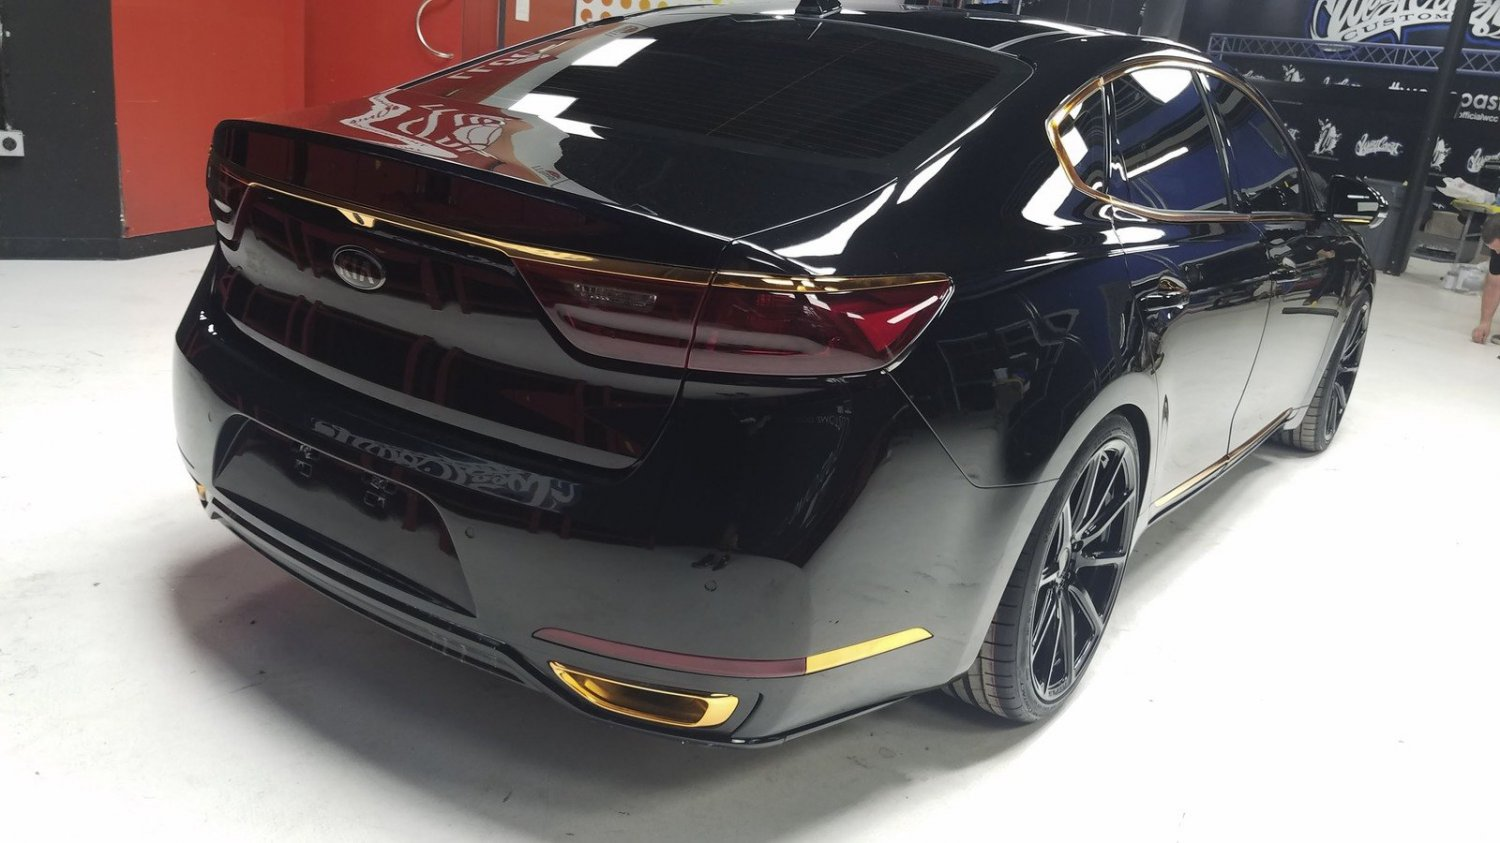 Kia Cadenza Tinted Tail Lights Overlays Smoked Lamps Protection Cover Film